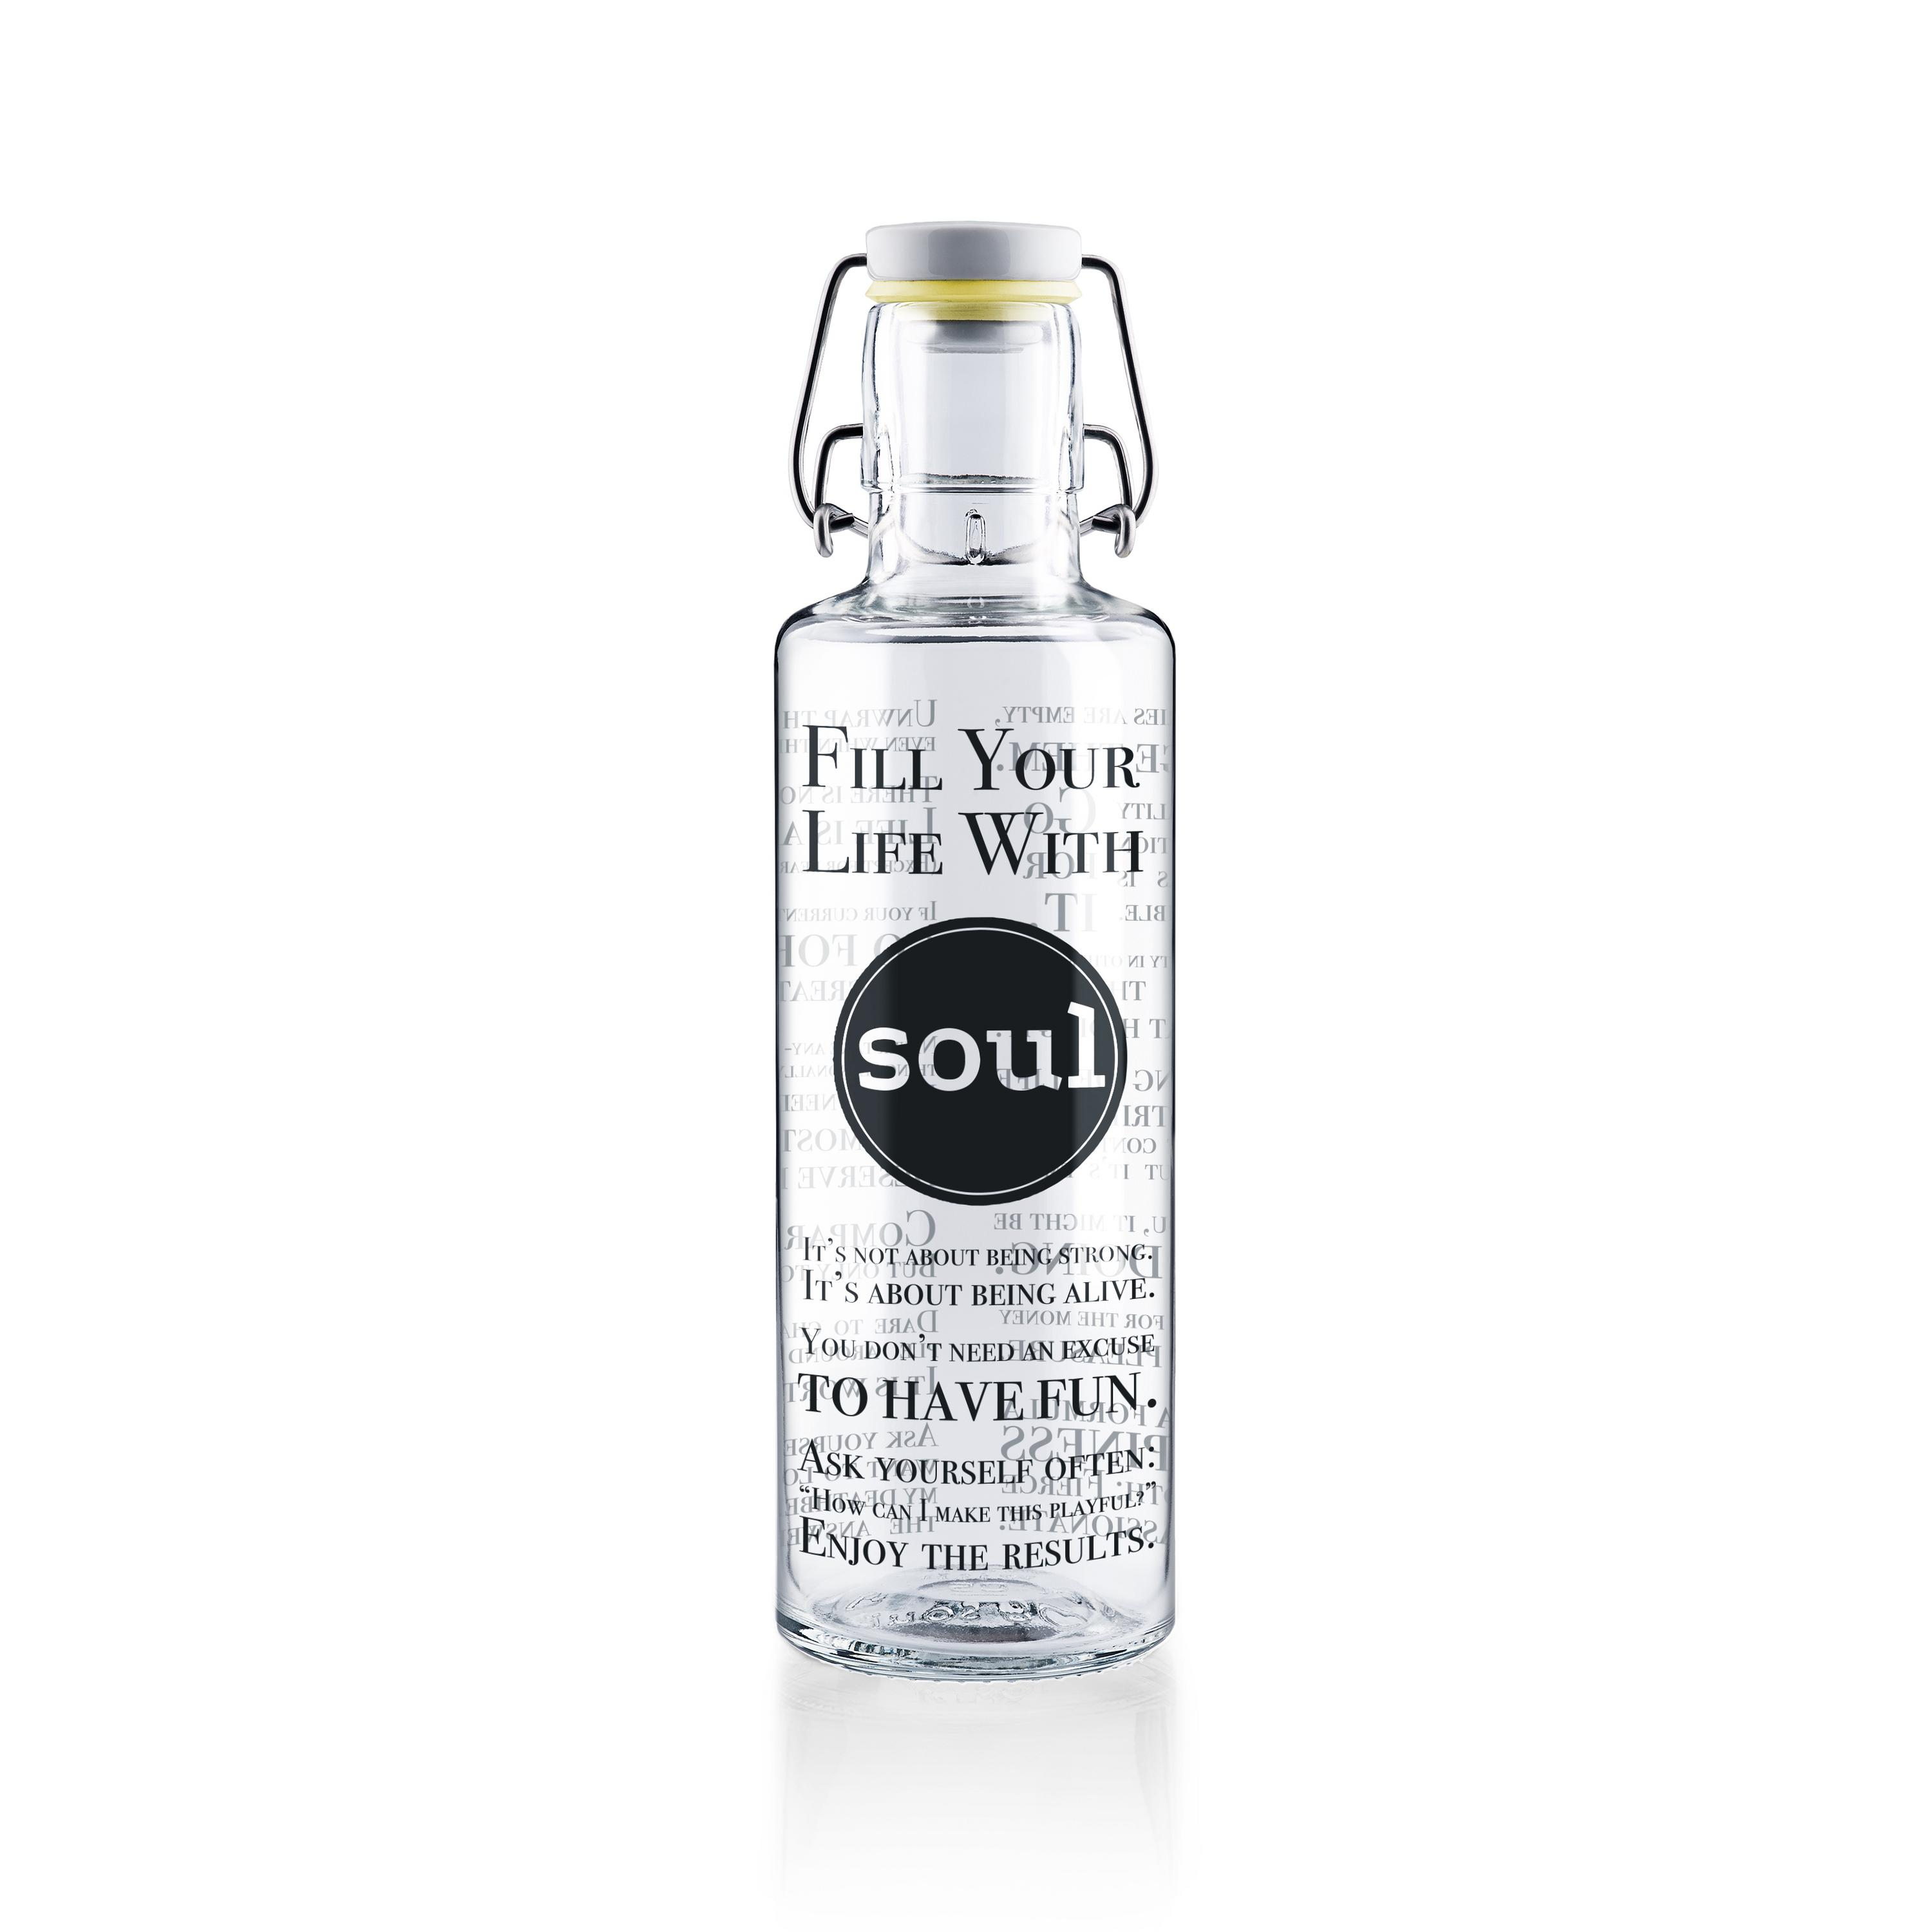 soulbottles Fill your Life with Soul Trinkflasche jetztbilligerkaufen